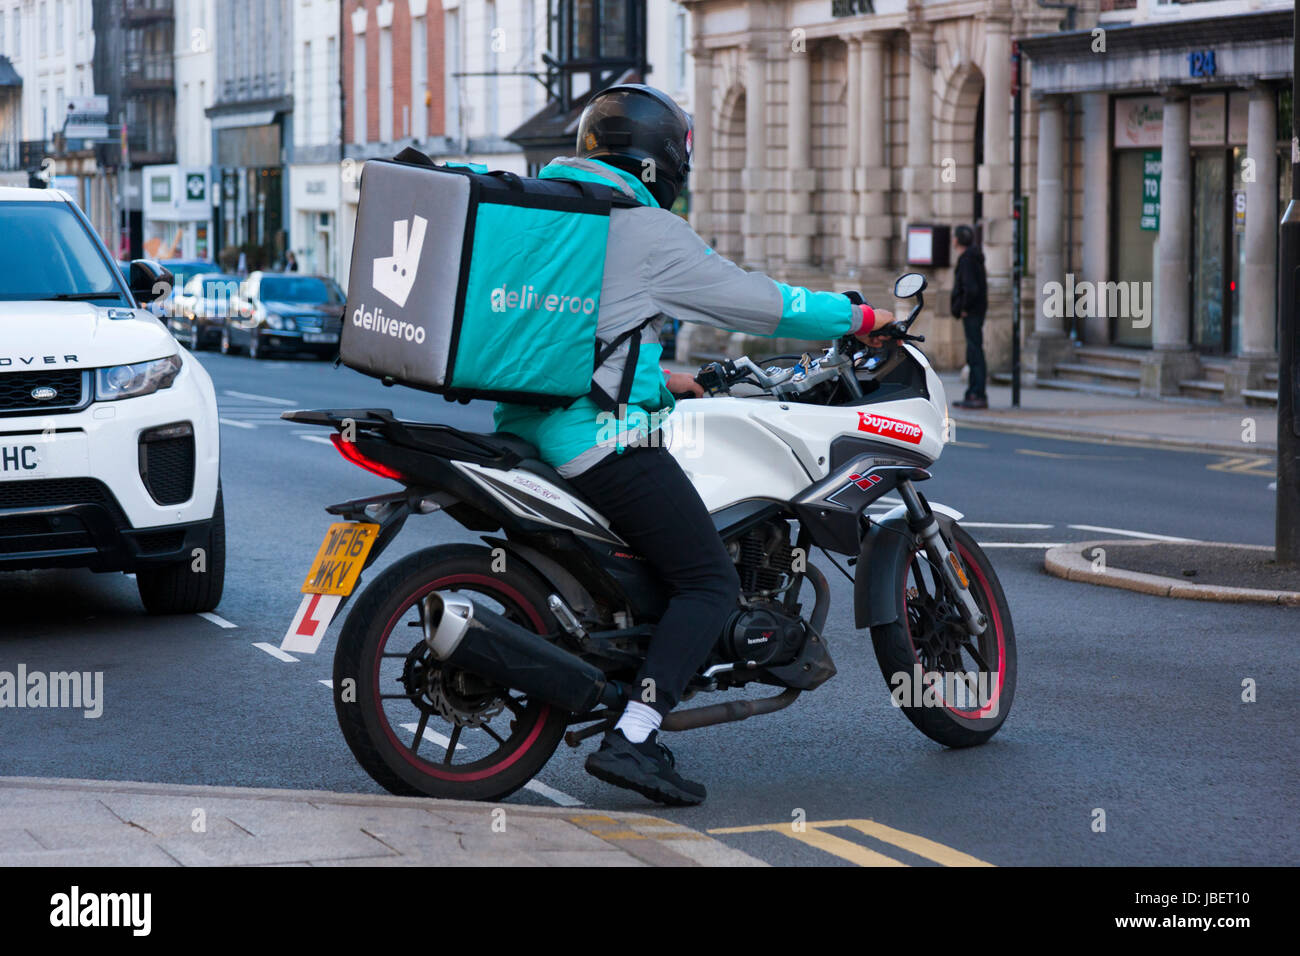 121df31c2be Deliveroo takeaway food delivery Courier Learner motor cyclist / cycle /  bike / biker making a delivery run in Royal Leamington Spa. U.K. (88)